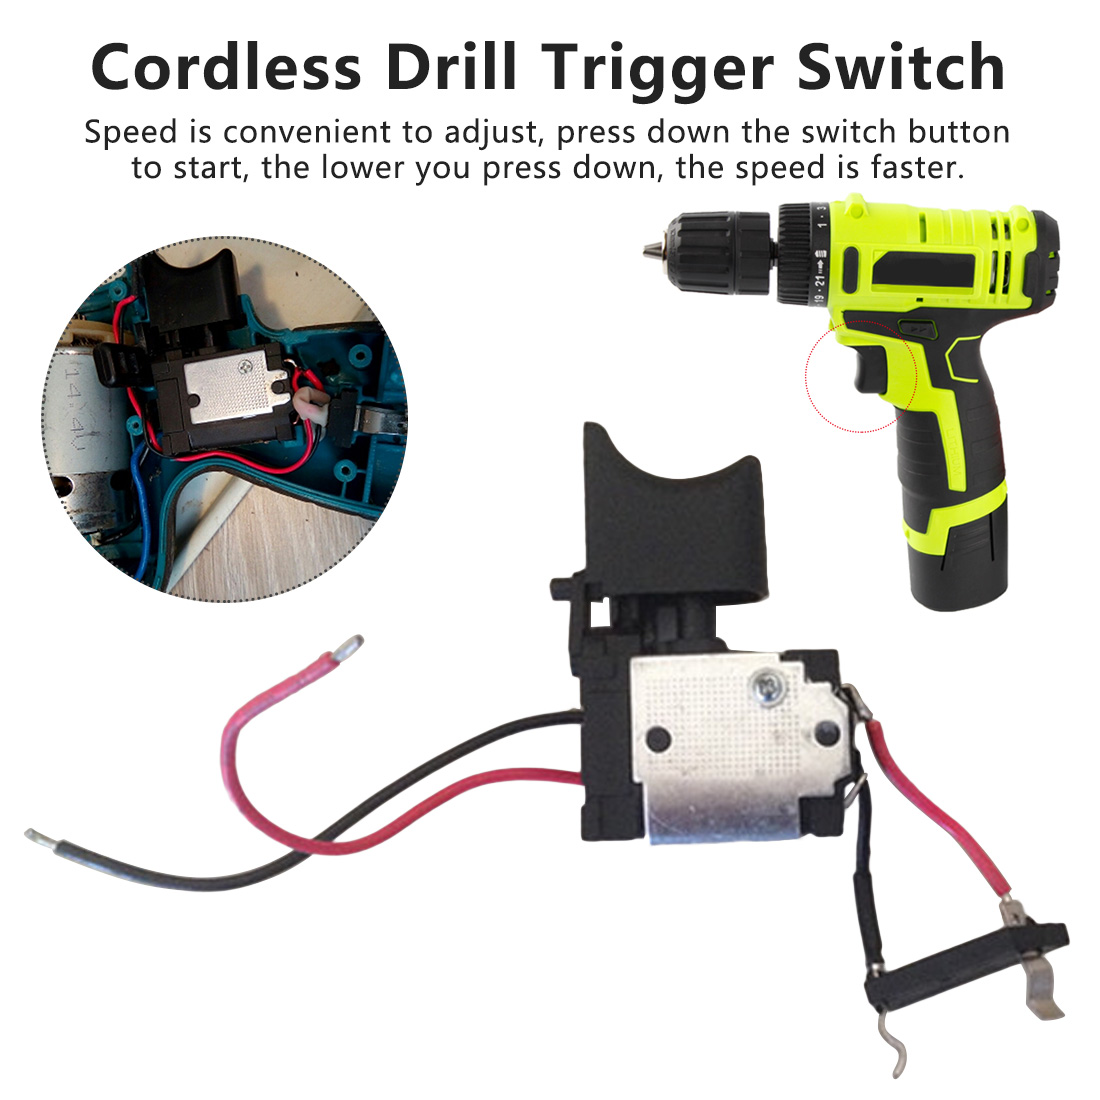 Electric Drill Dustproof Speed Control Push Button Trigger Switch DC 16A 7.2V-24V Switches